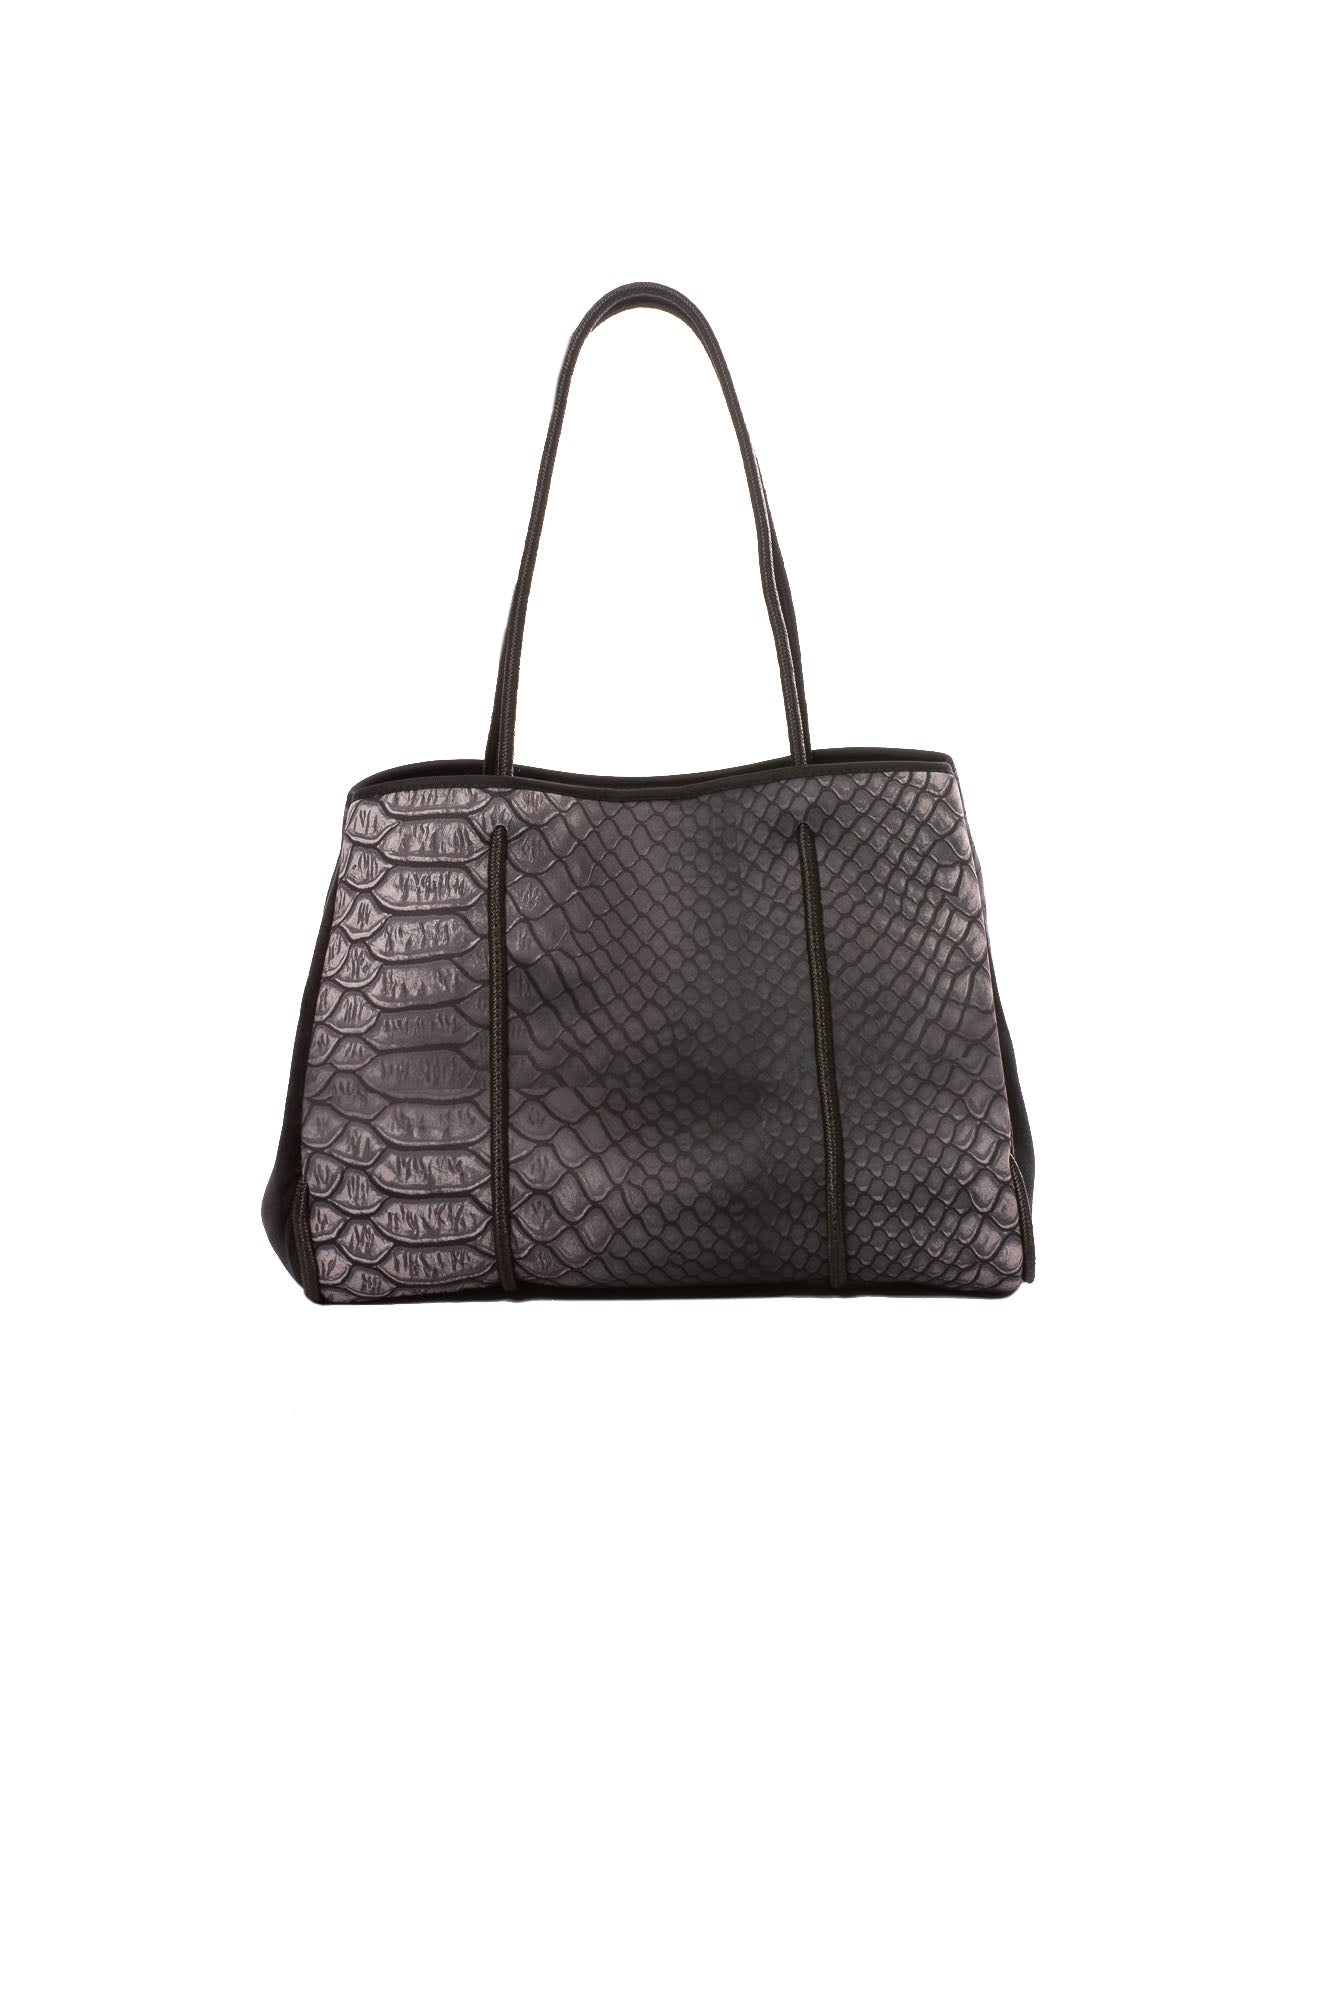 Haute Shore - Greyson Smoke Neoprene Tote Bag w/Zipper Wristlet Inside (Smoke, Black Croc Print)